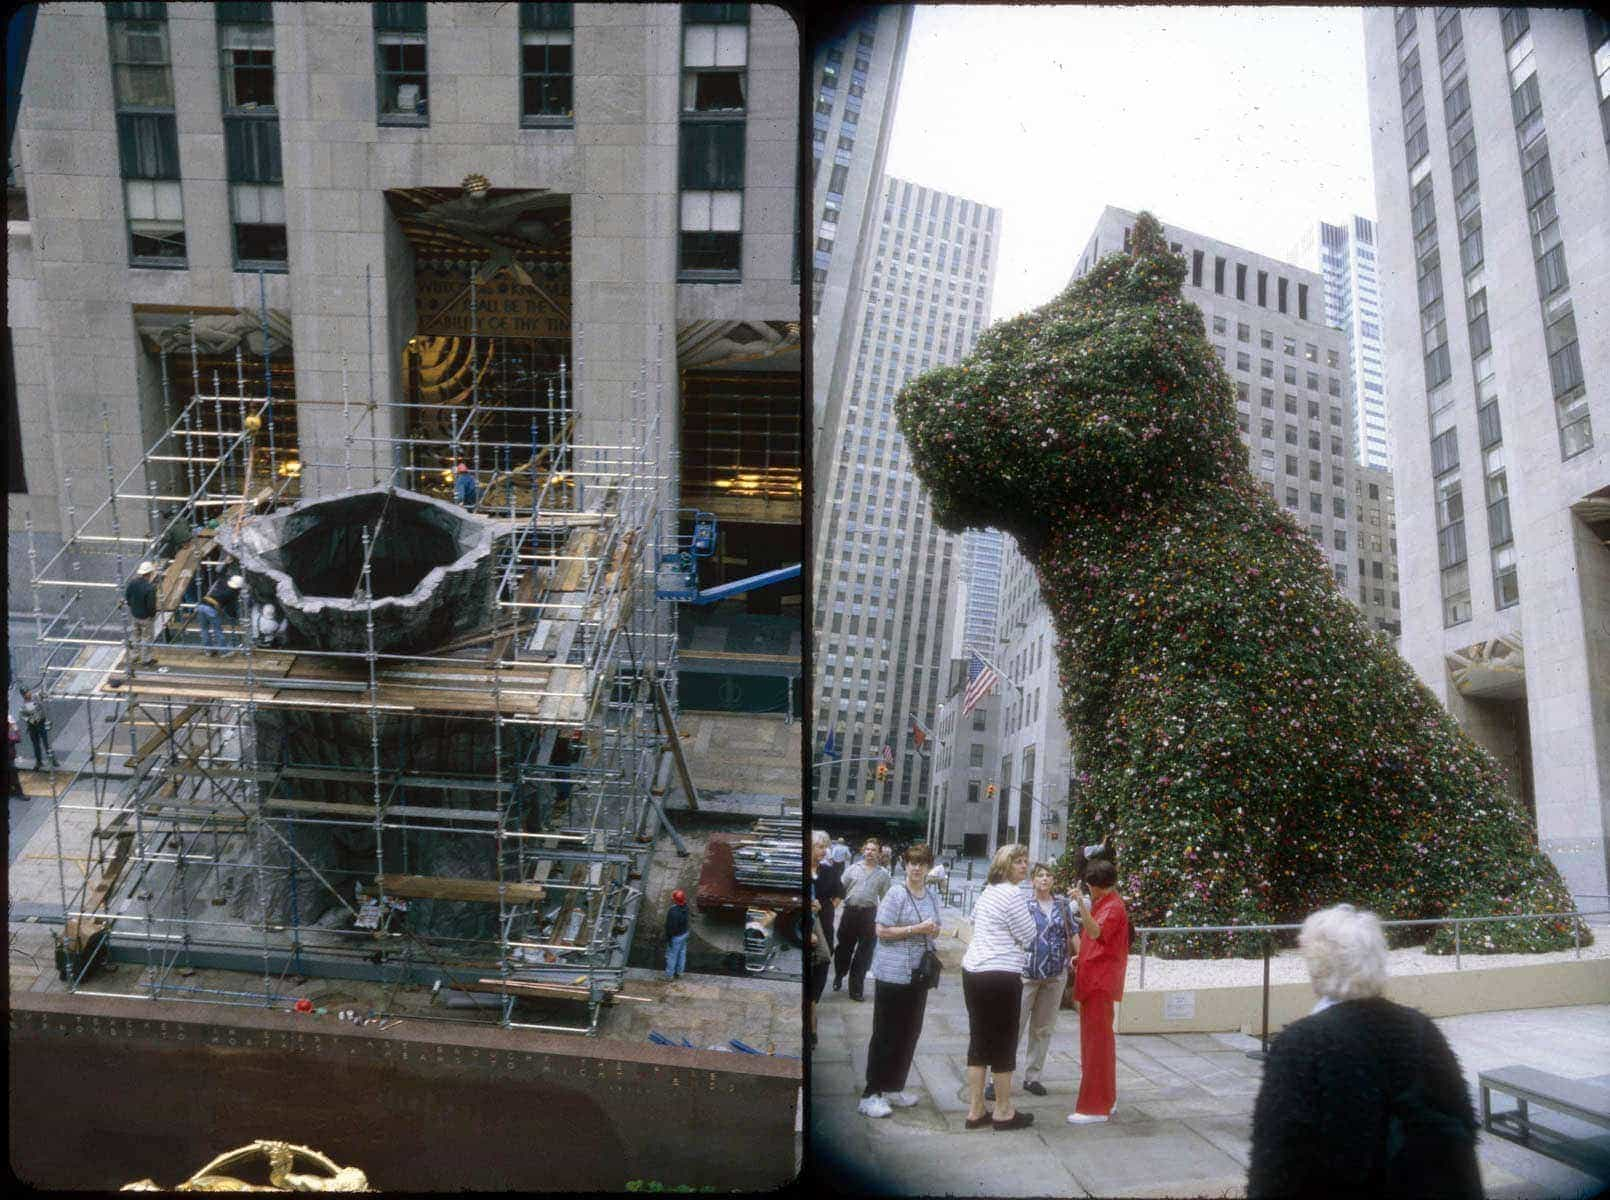 We will tell you everything about Puppy, the flower statue guarding